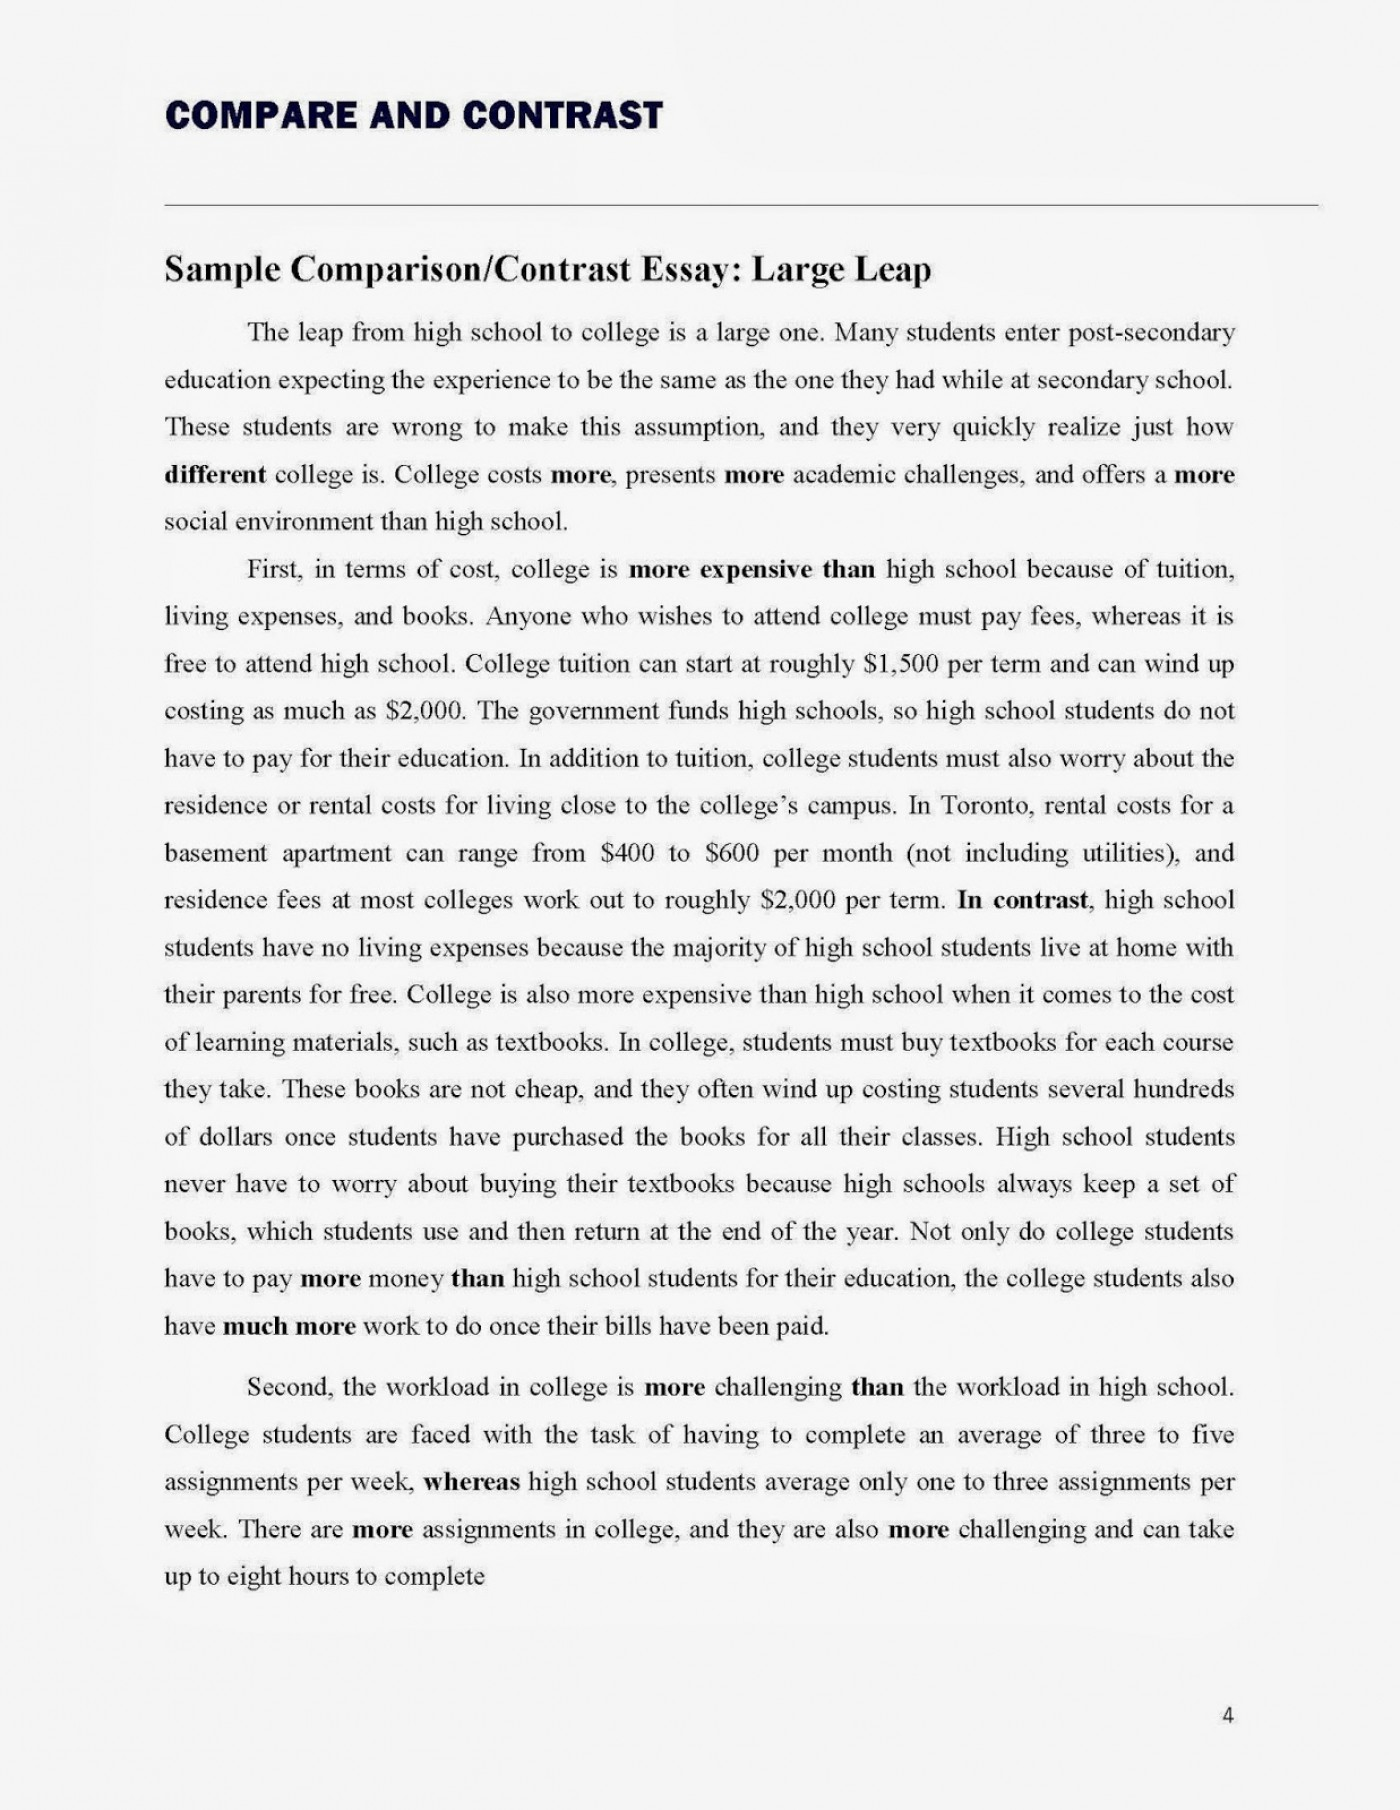 011 Good Compare And Contrast Essay Compare20and20contrast20essay Page 4 Unbelievable The Great Gatsby Tom Examples Middle School Movie Book 1400